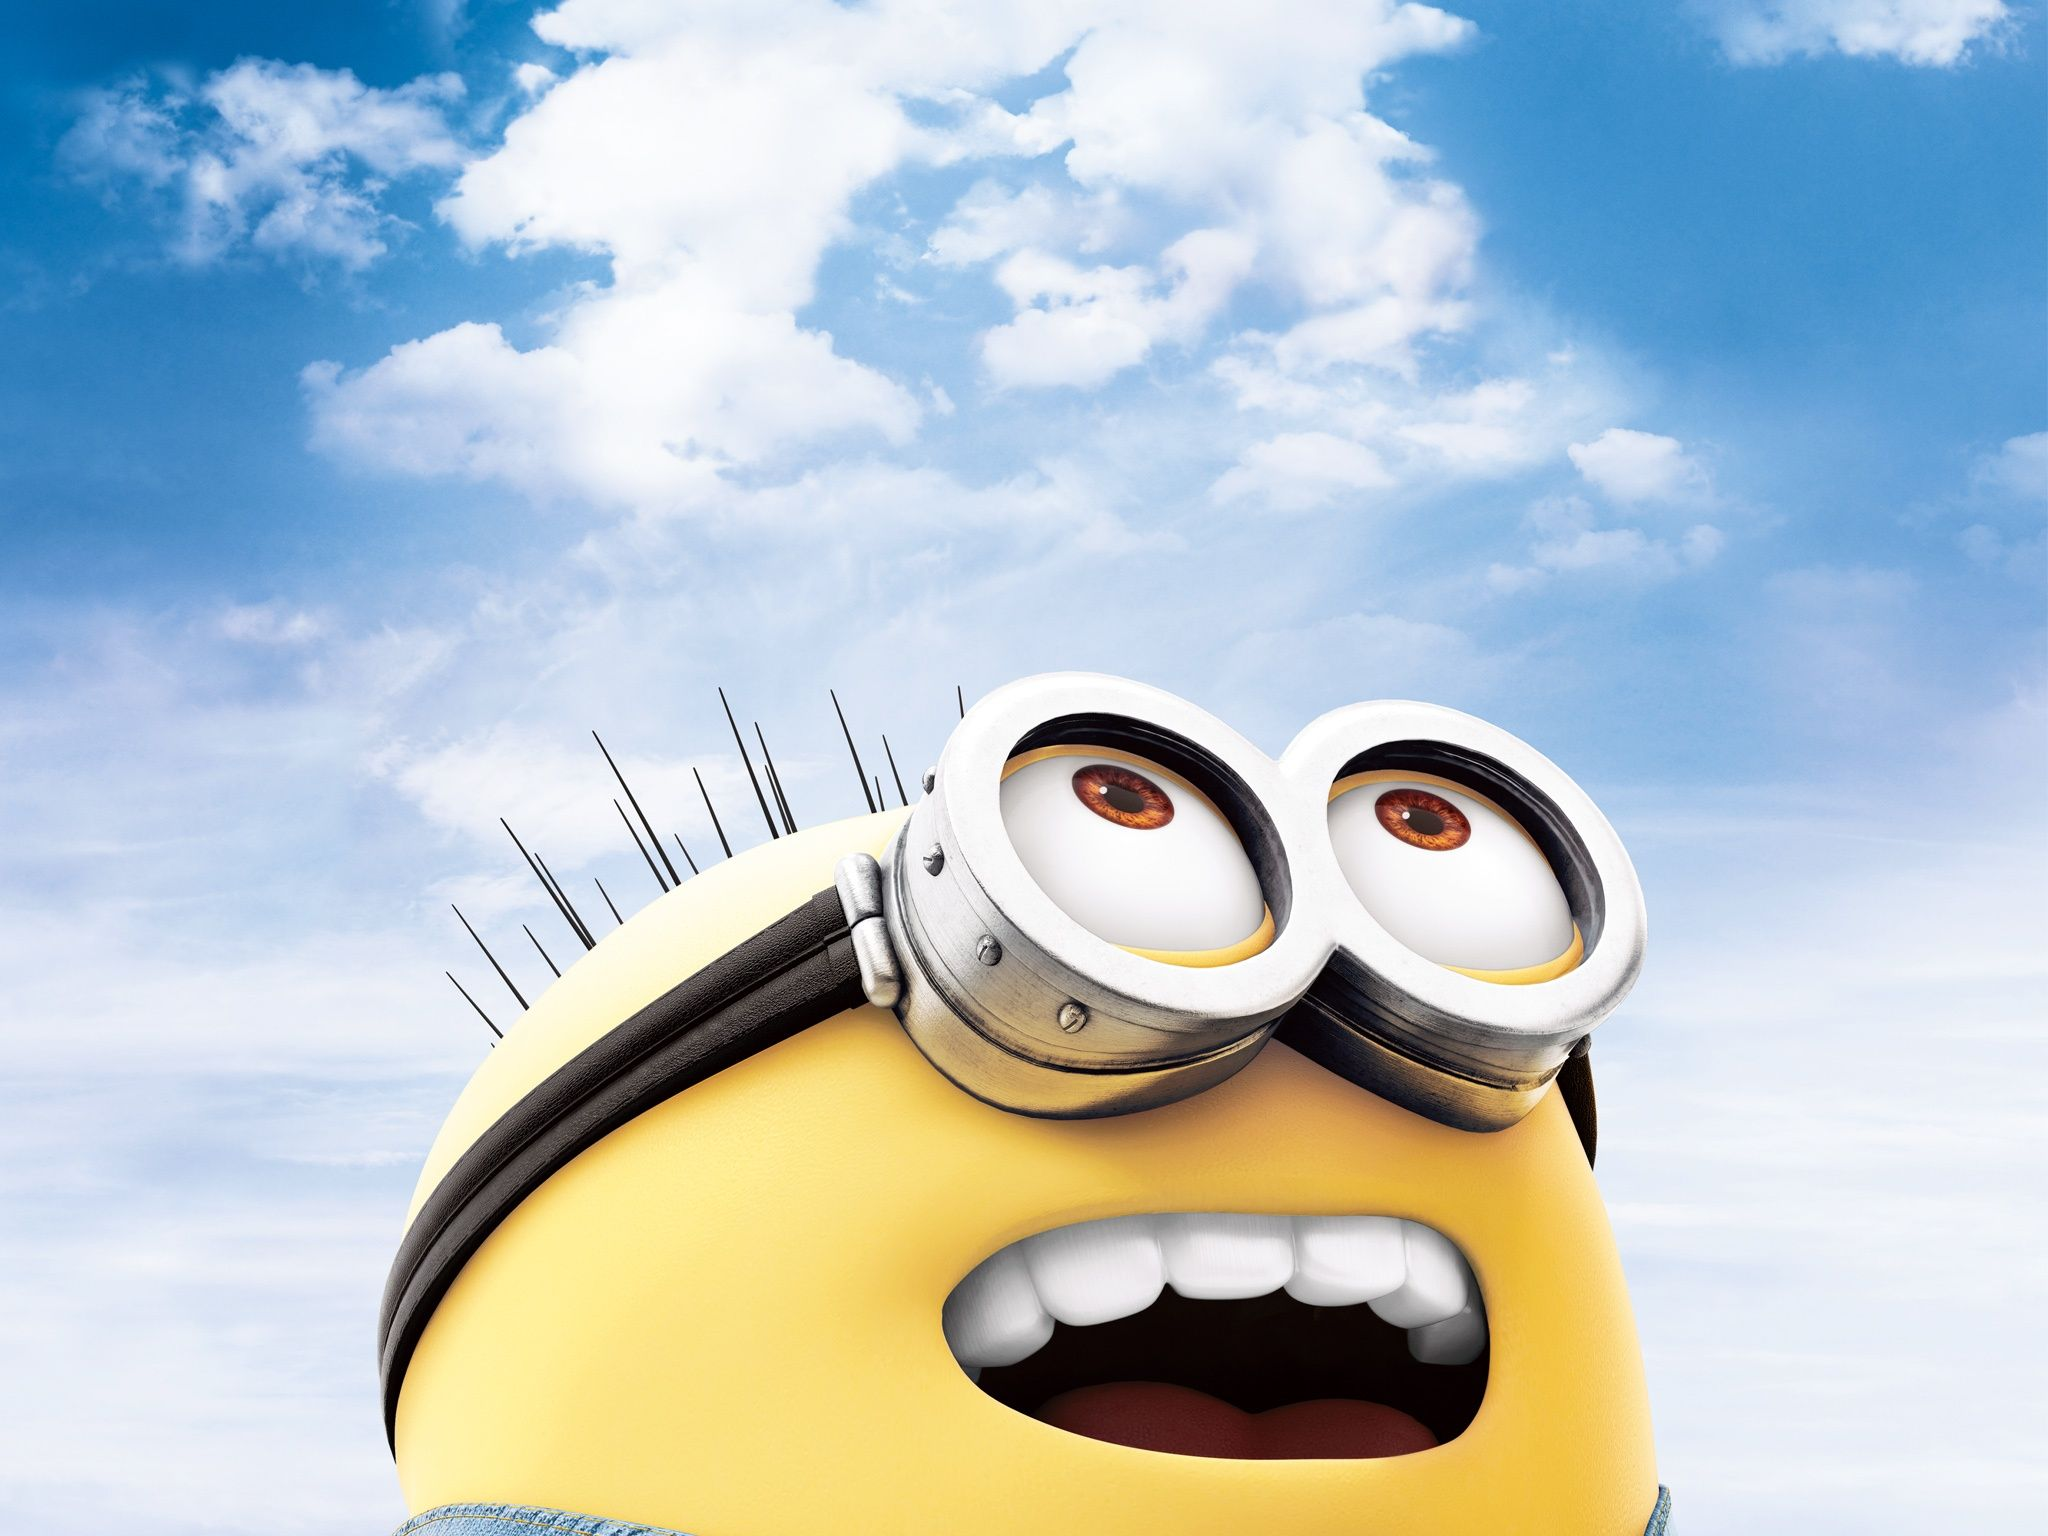 Minion In Despicable Me 2 2048x1536jpg 20481536